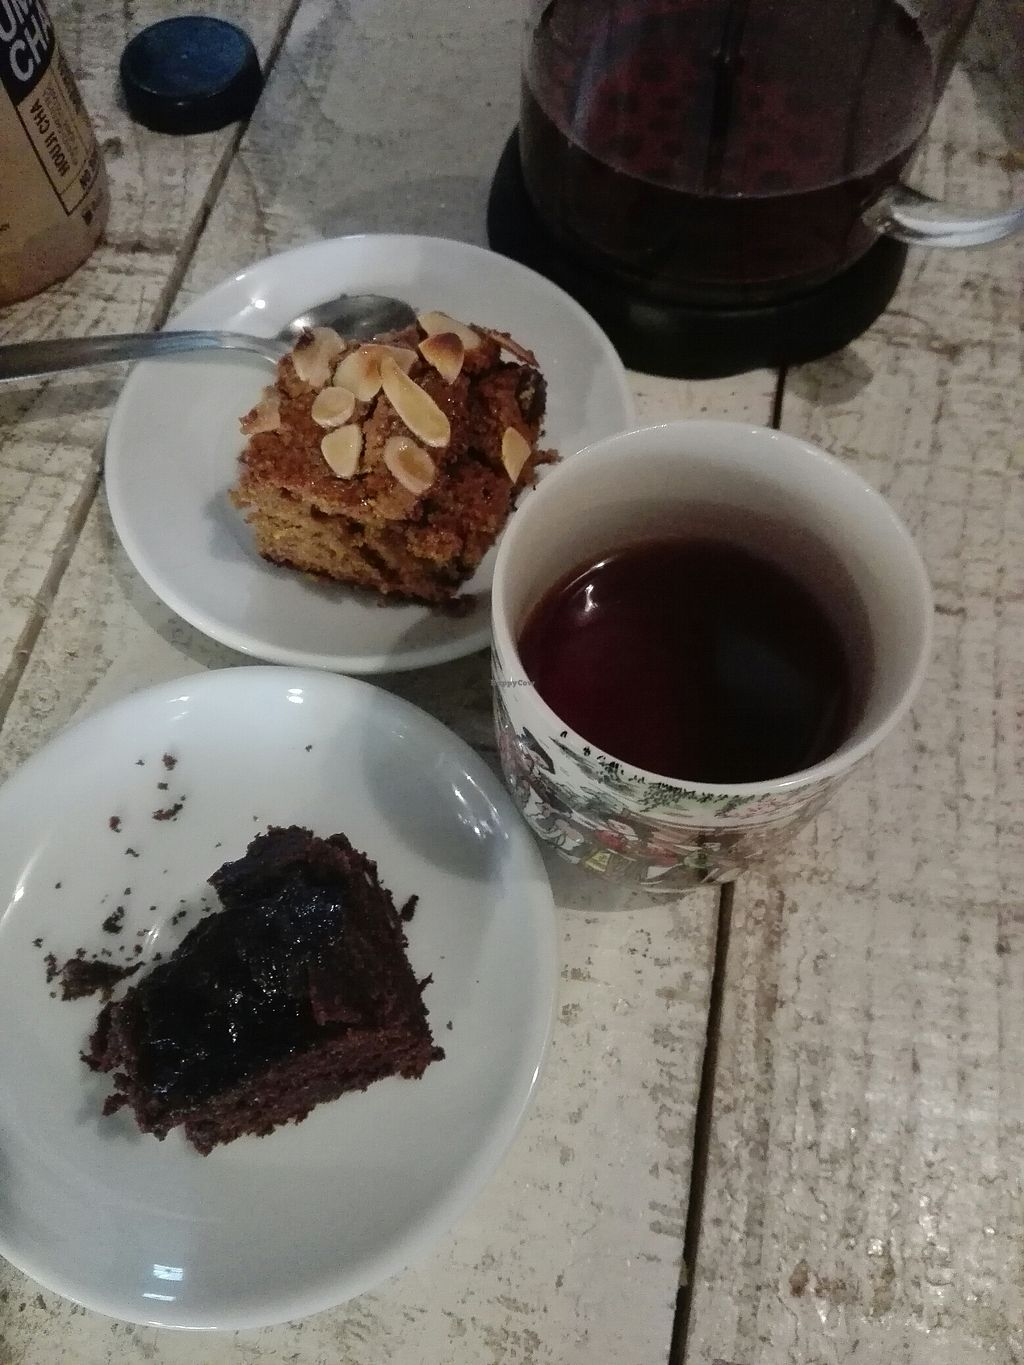 """Photo of Yummy Veggie  by <a href=""""/members/profile/Pteri"""">Pteri</a> <br/>Chocolate cake, carrot cake, both with panela and rooibos infusion <br/> August 19, 2017  - <a href='/contact/abuse/image/87778/294335'>Report</a>"""